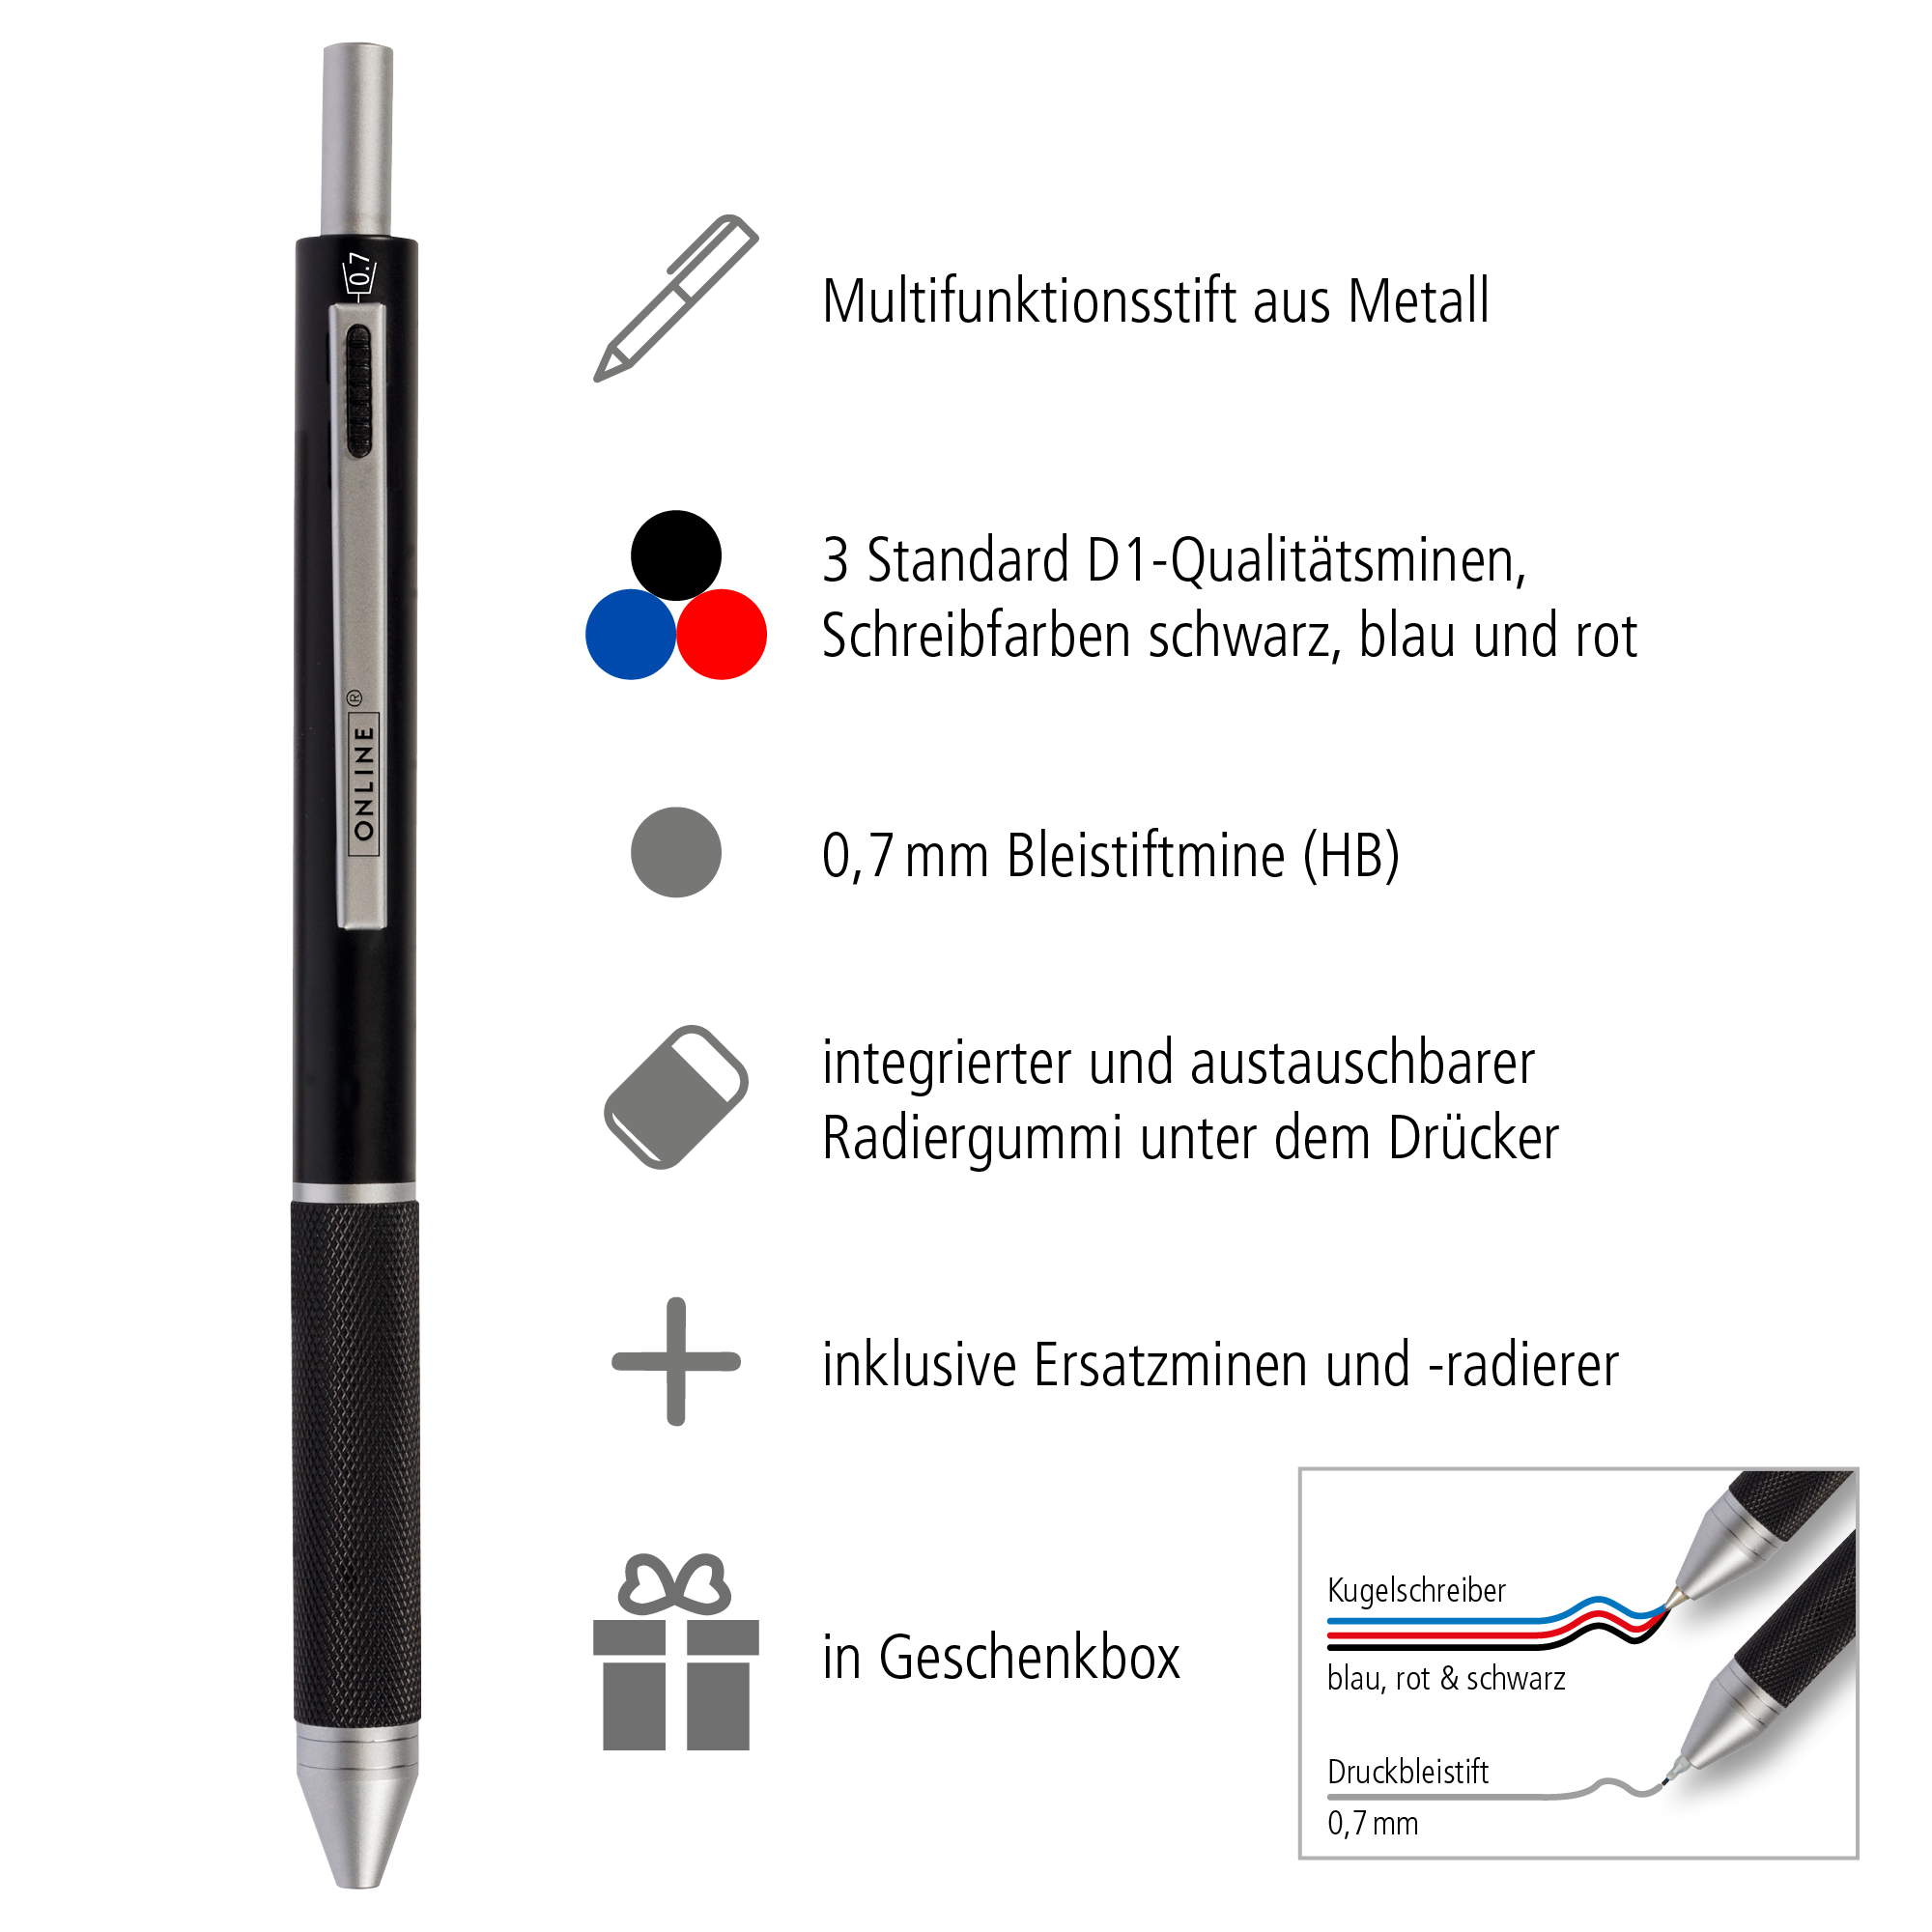 Multipen 4-in-1 Black, inkl. Ersatzminen in Box